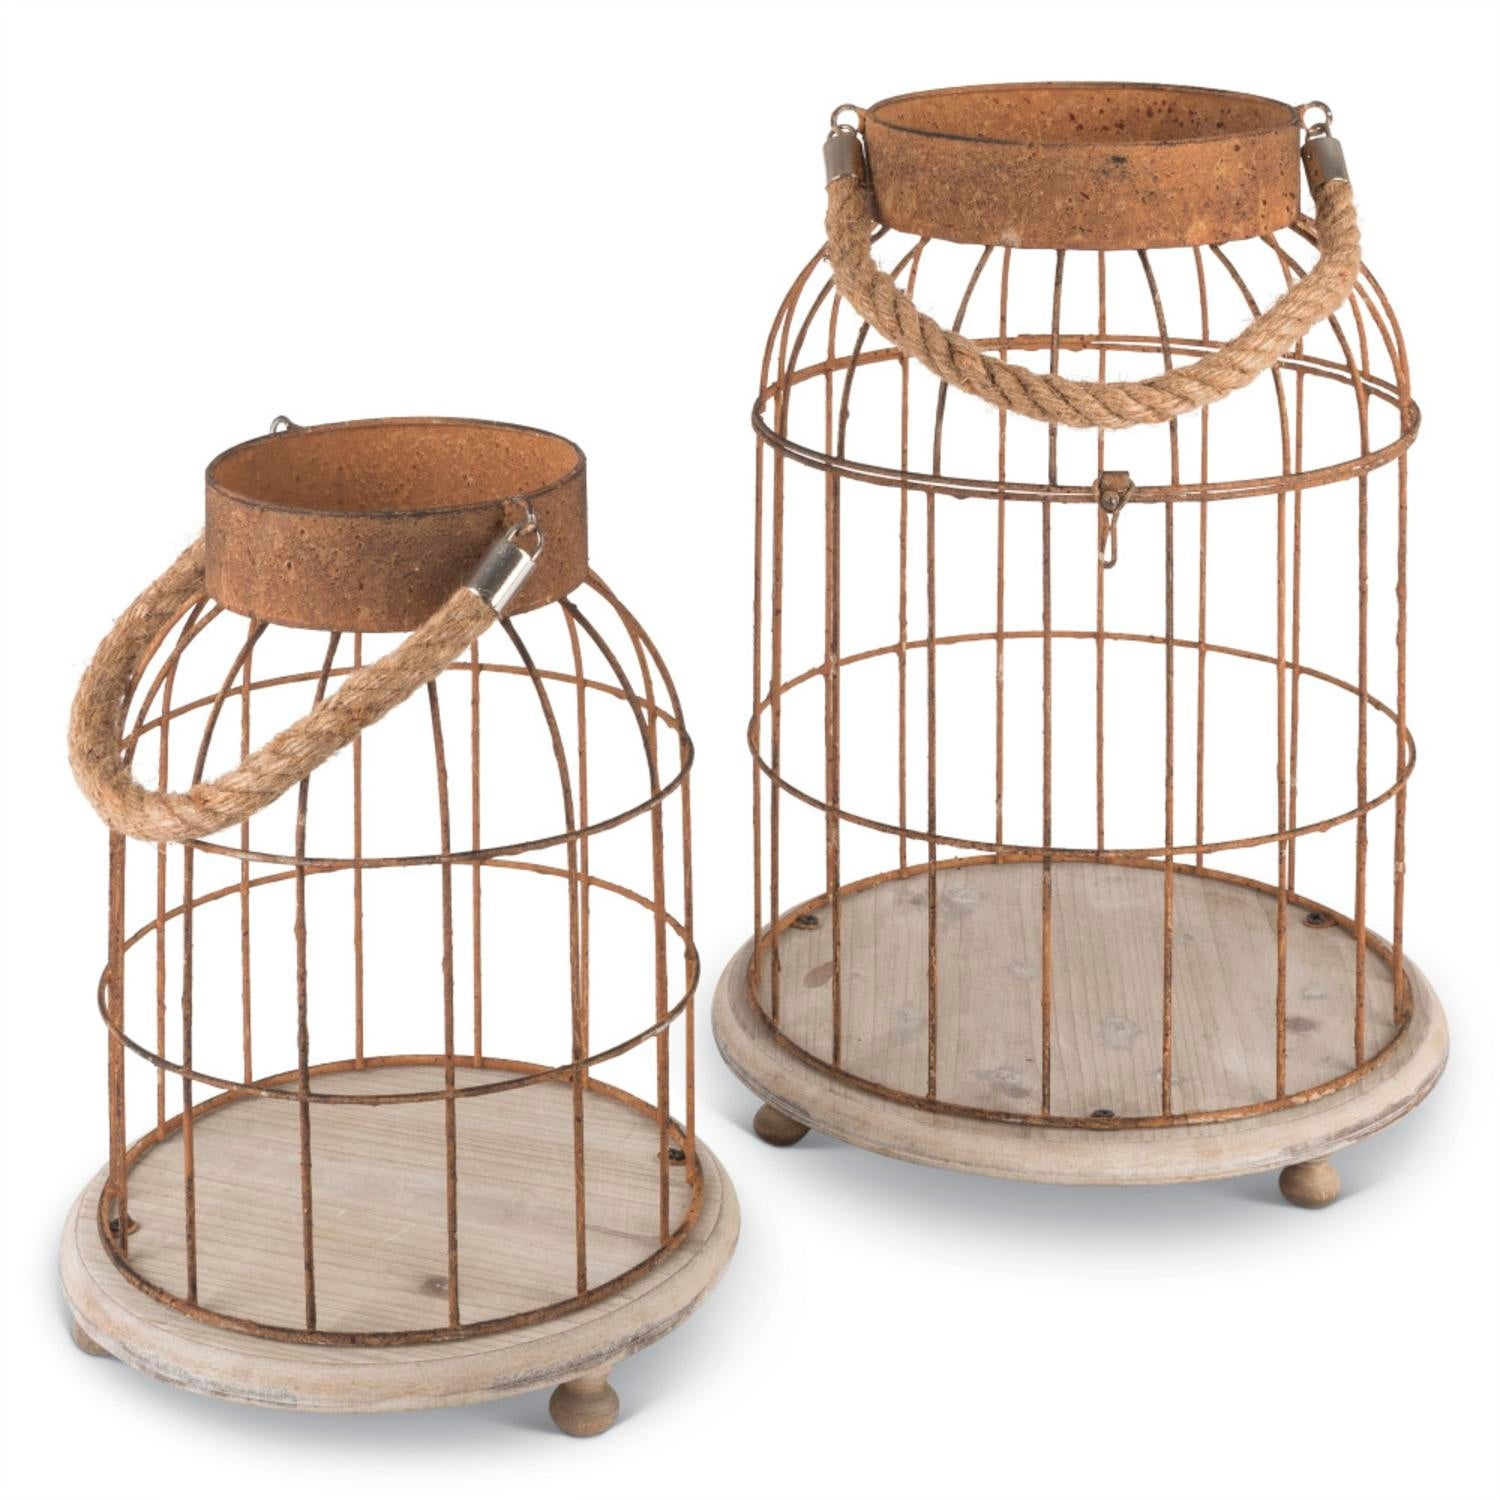 Set of 2 Rustic Antique Style Open Top Wire Bird Cages with Hanging ...